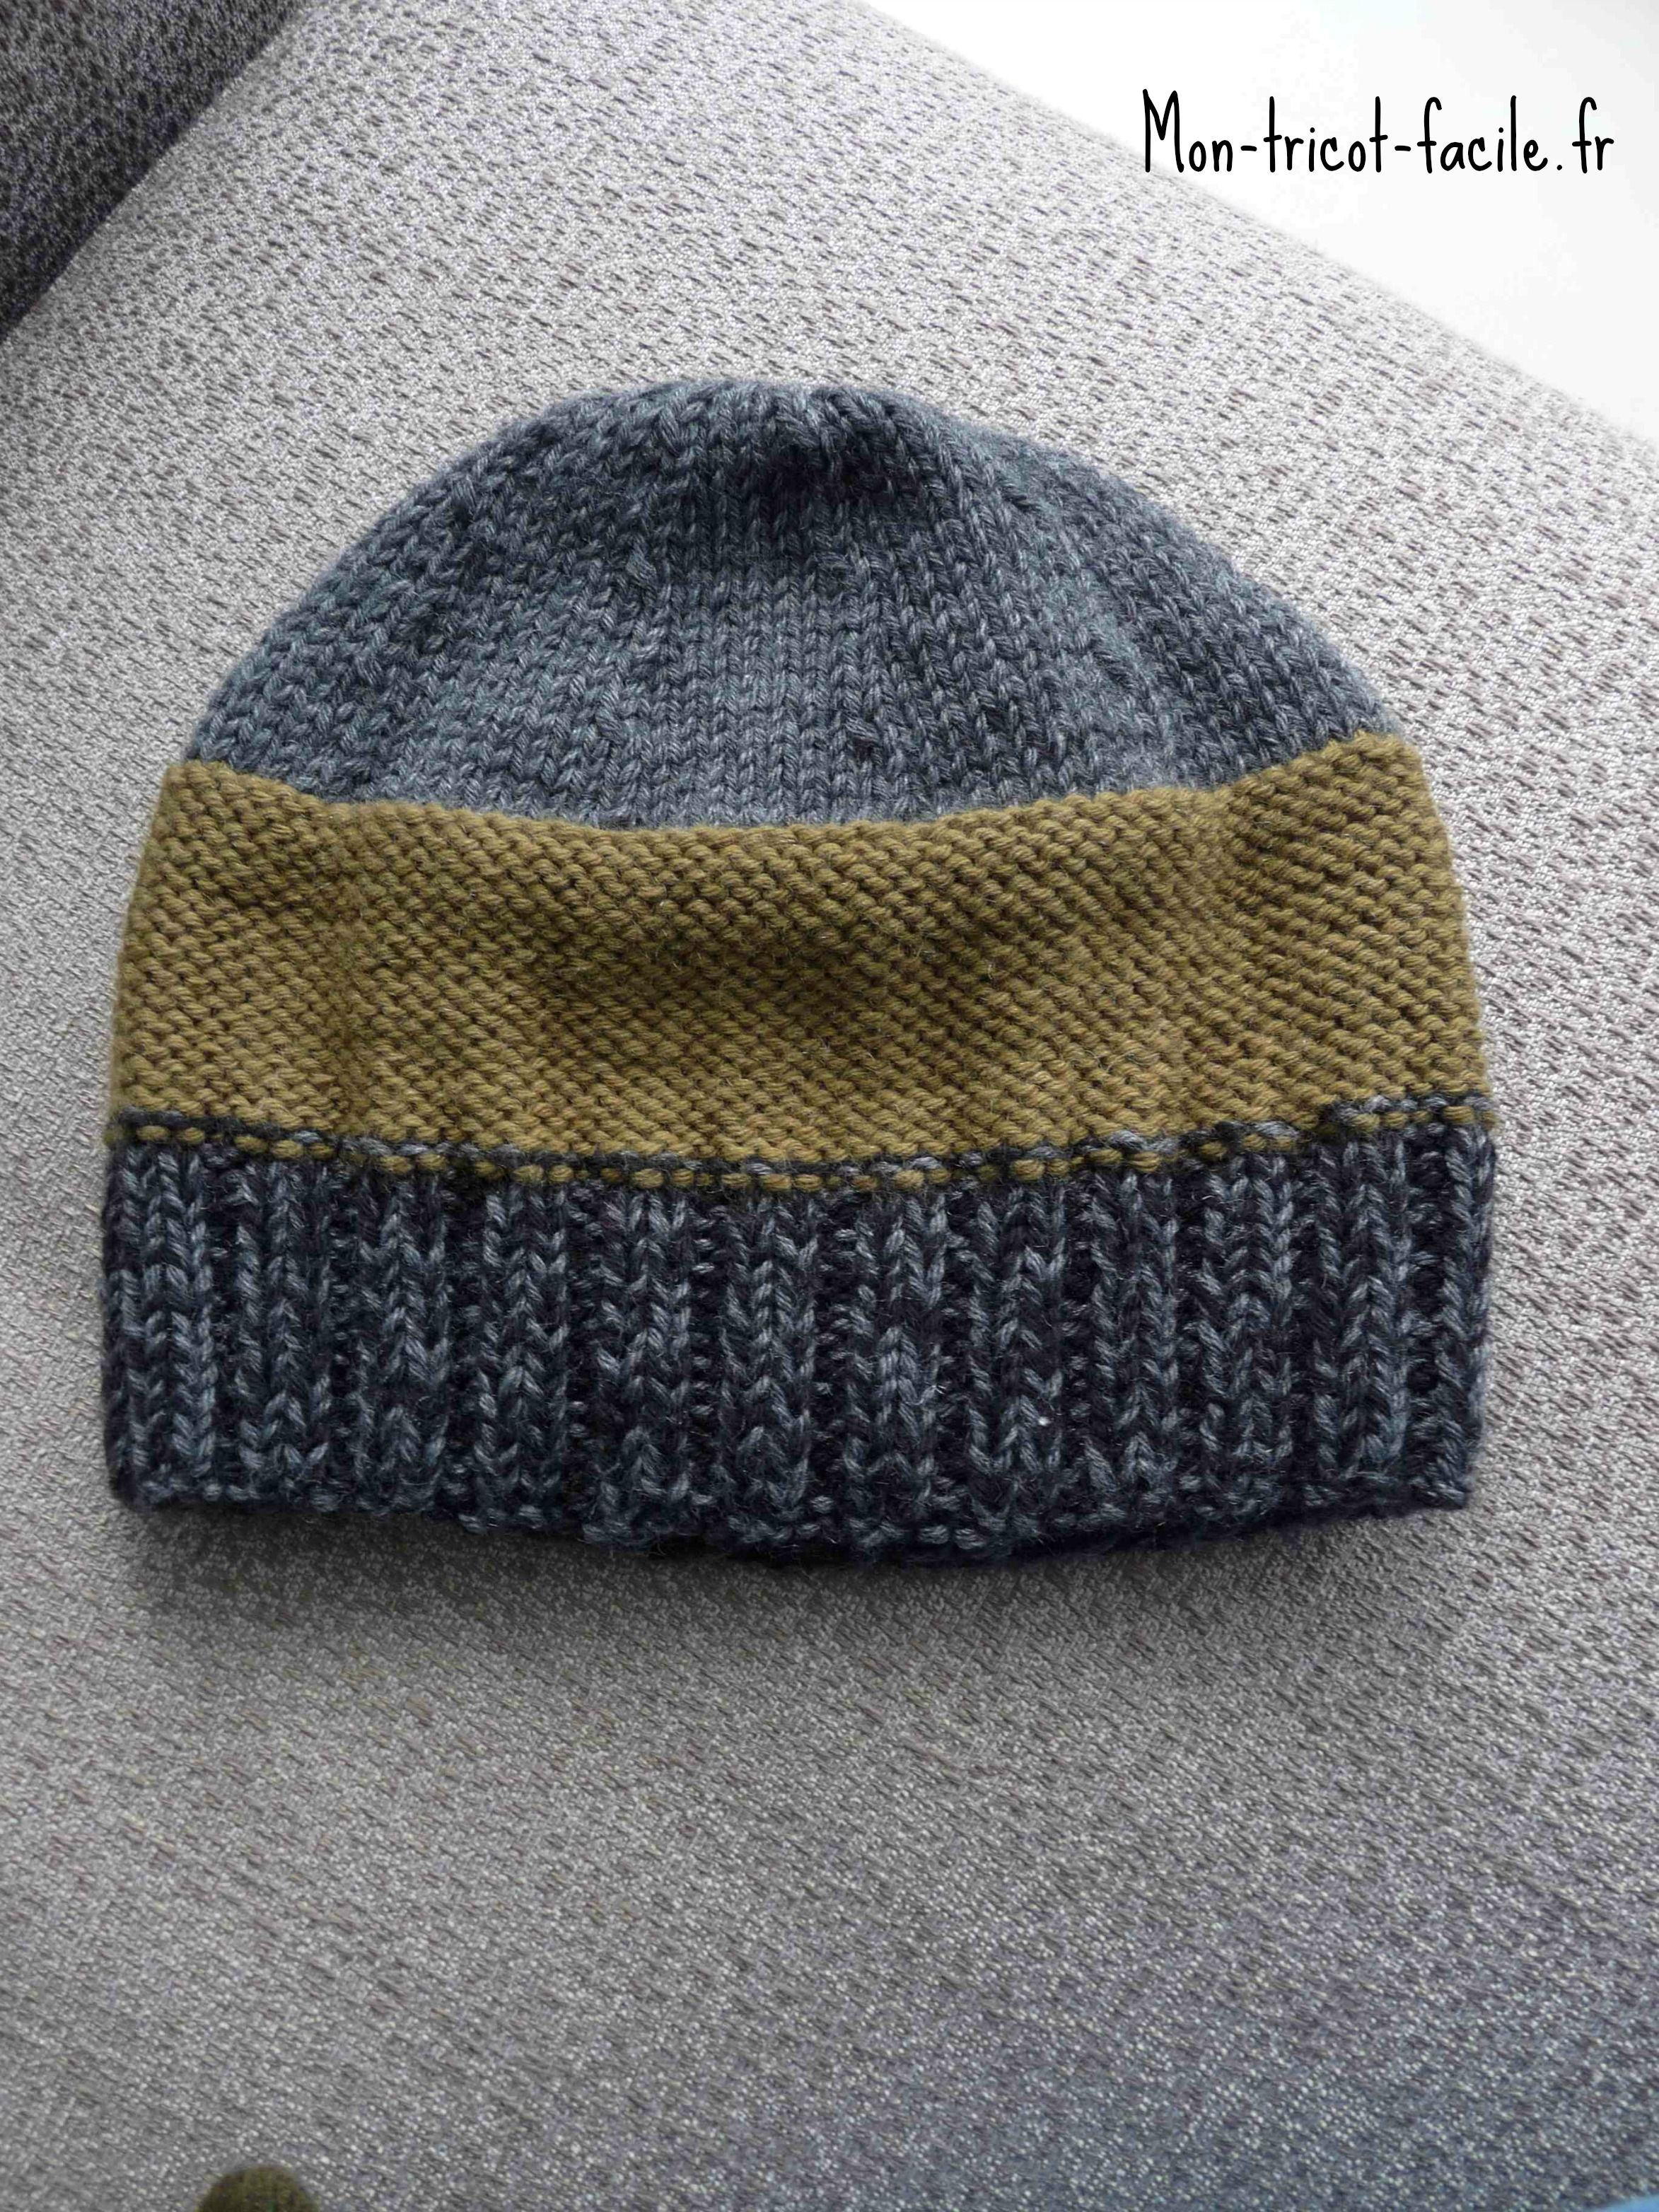 Bonnet Homme Tricot Hats Pinterest Knitting Crochet And